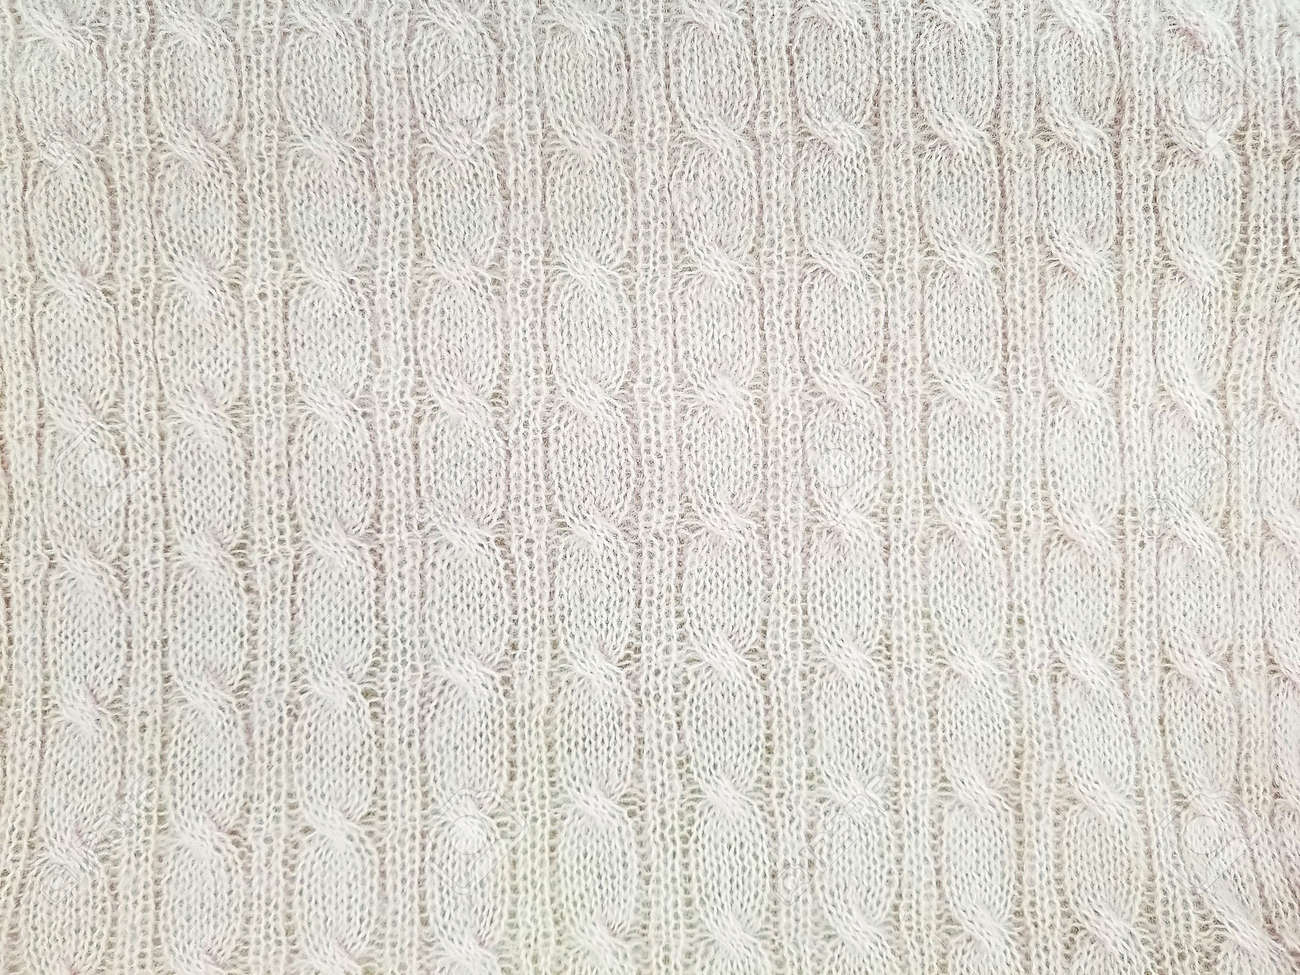 f5bb62655777 close up of cream colored cable knit pattern background Stock Photo -  96566539